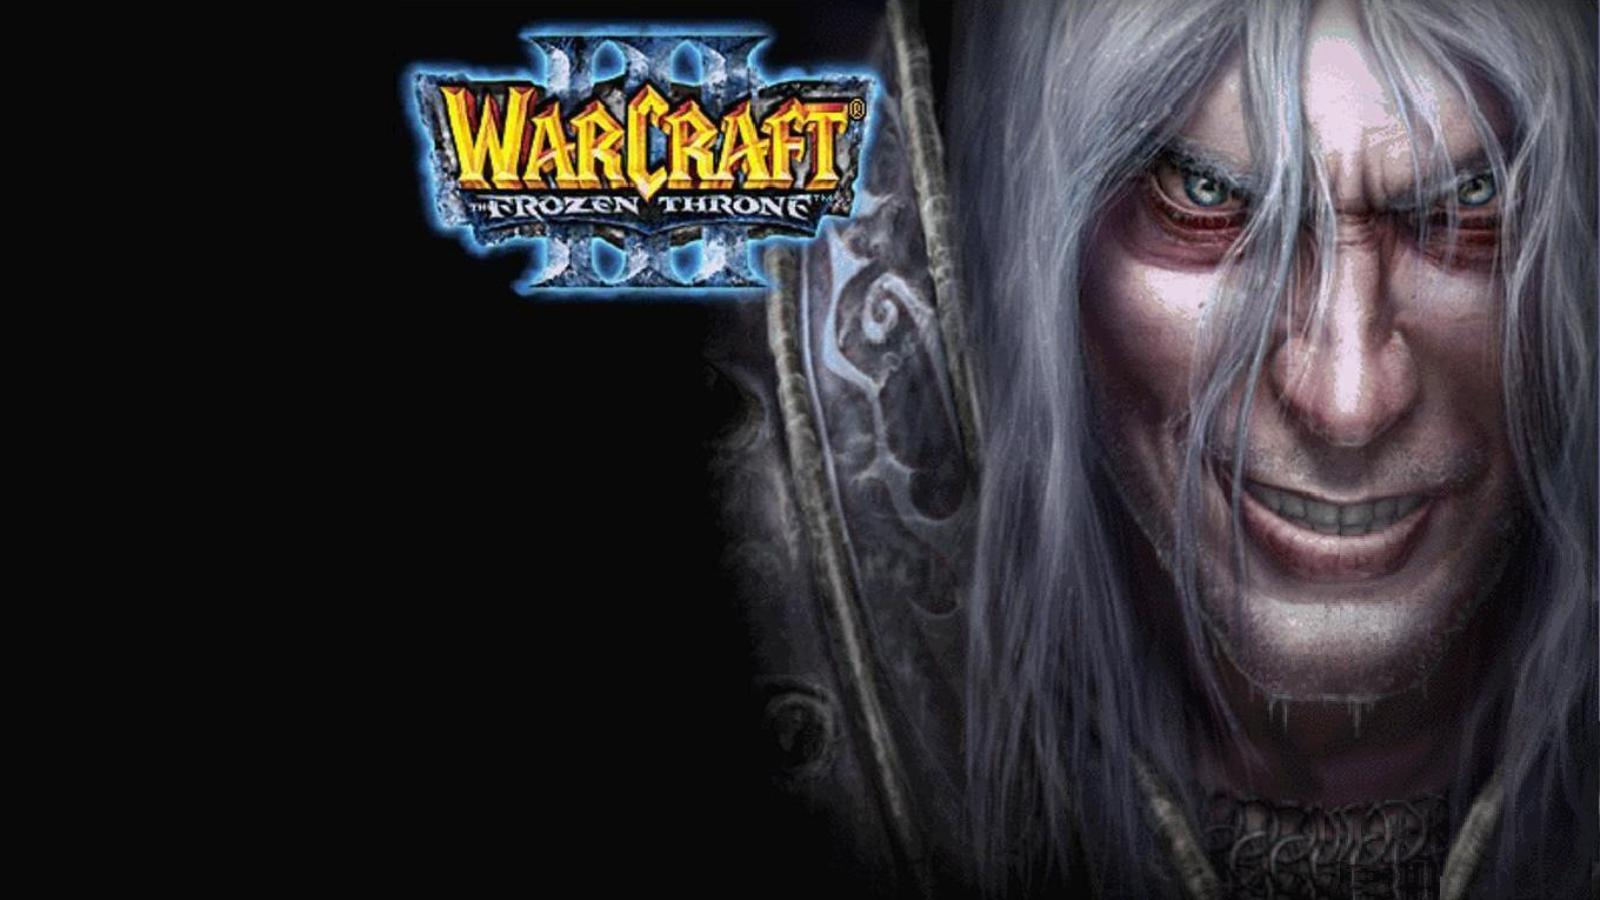 Sex patch warcraft 3 frozen throne sex images